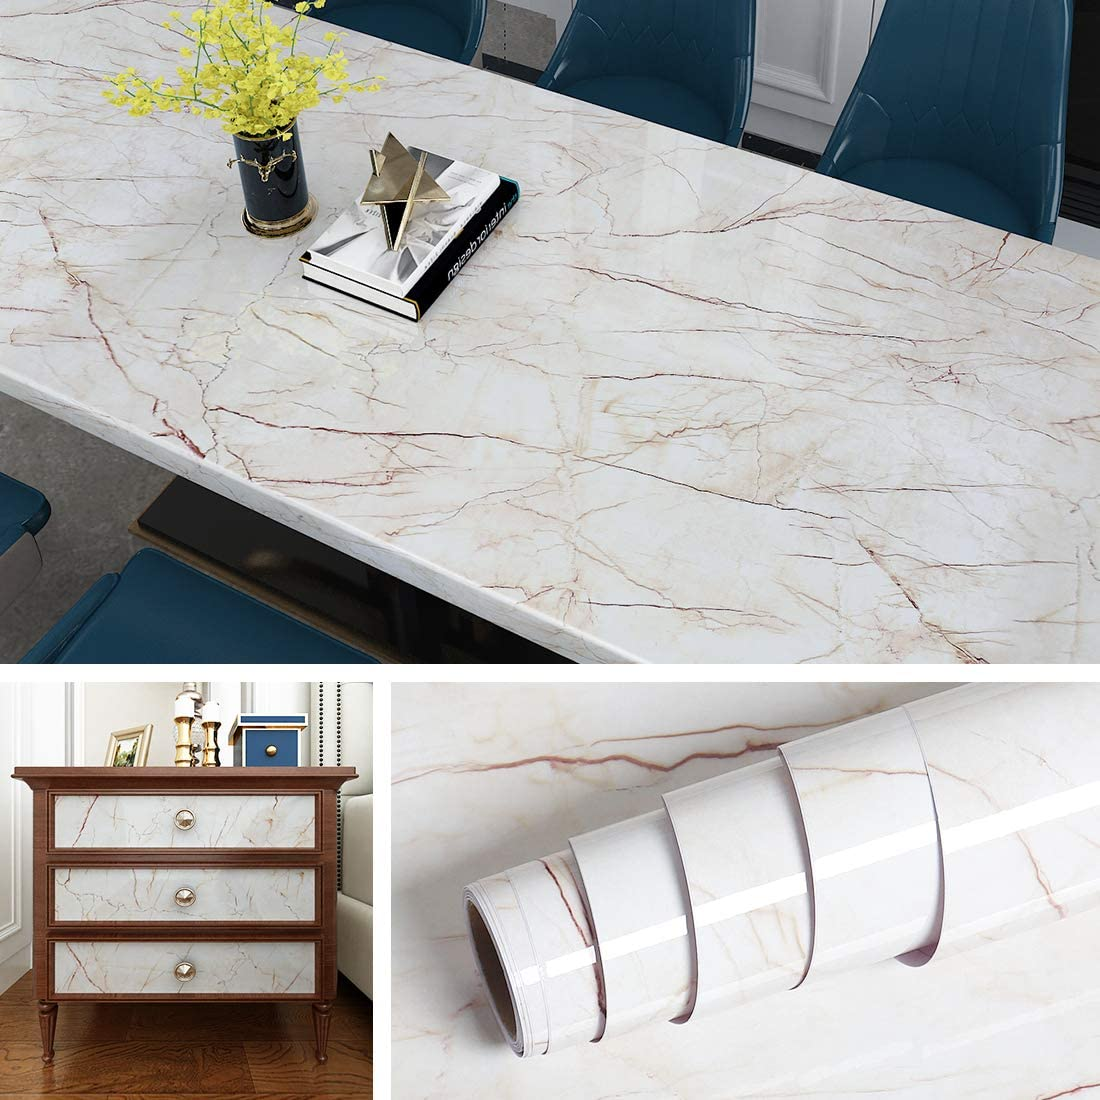 Livelynine Marble Contact Paper For Countertops Kitchen Countertop Peel And Stick Wallpaper For Bathroom Sink Shower Desk Cover Adhesive Paper For Furniture Waterproof Removable 15 8x78 8 Inch Amazon Com